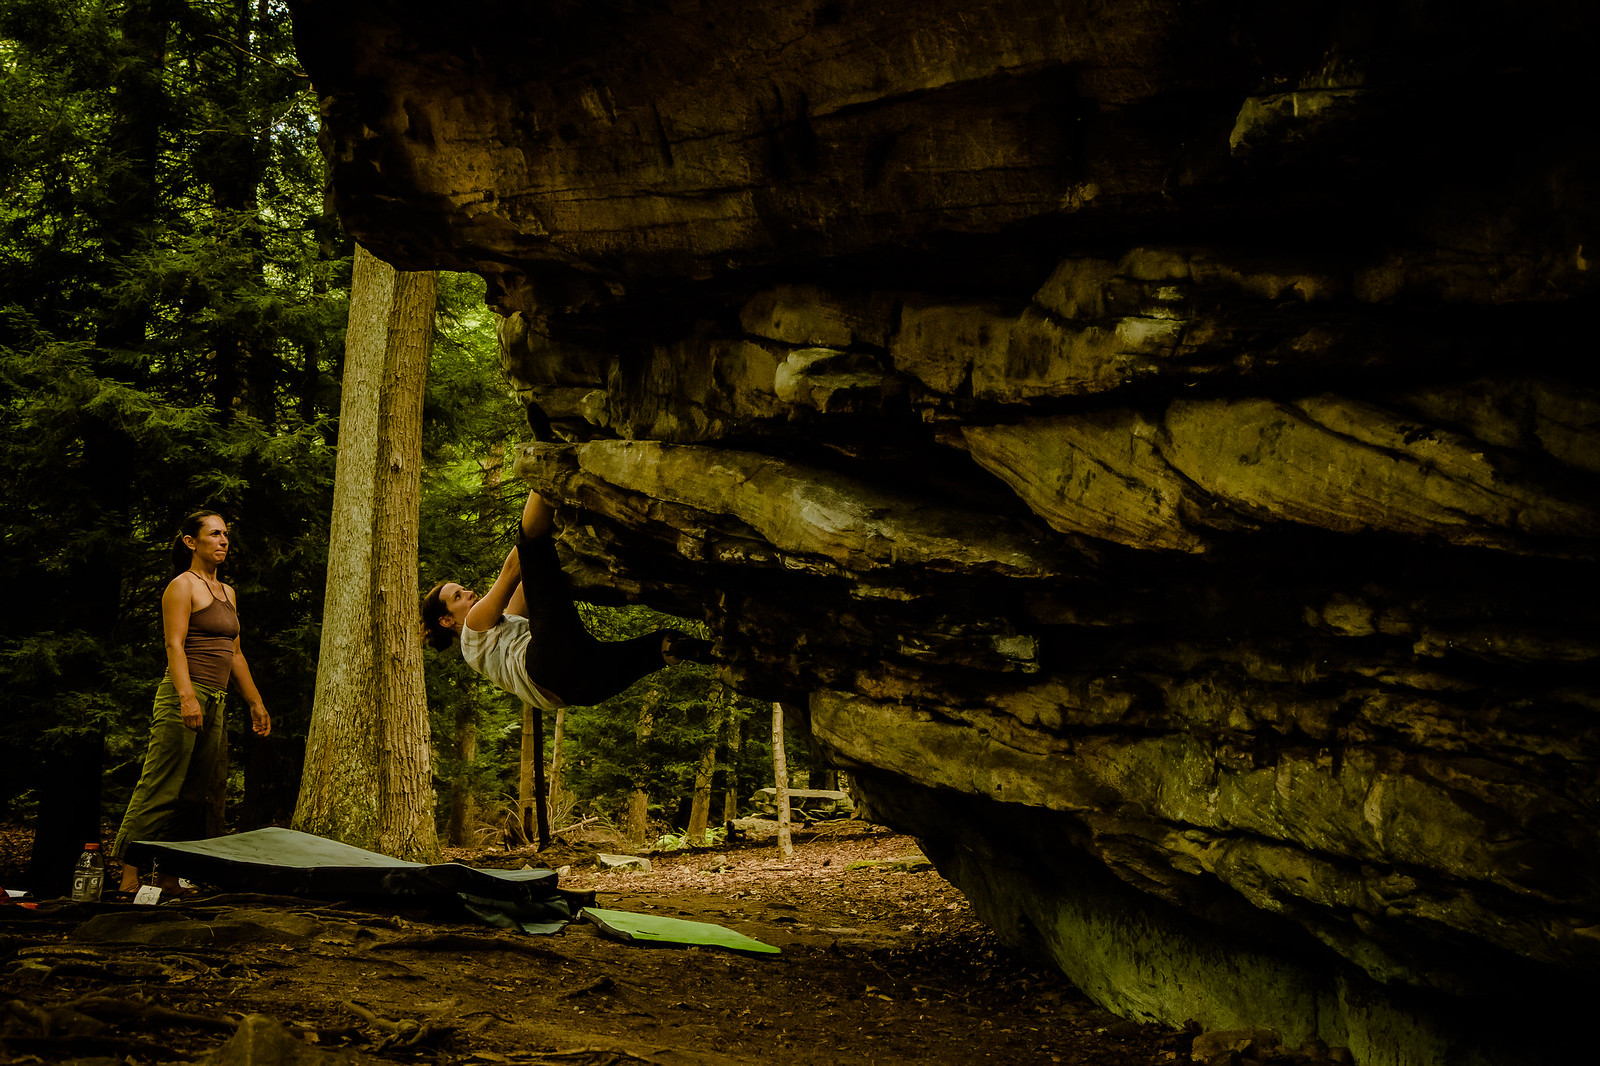 Erica working Mushrooms (V3)